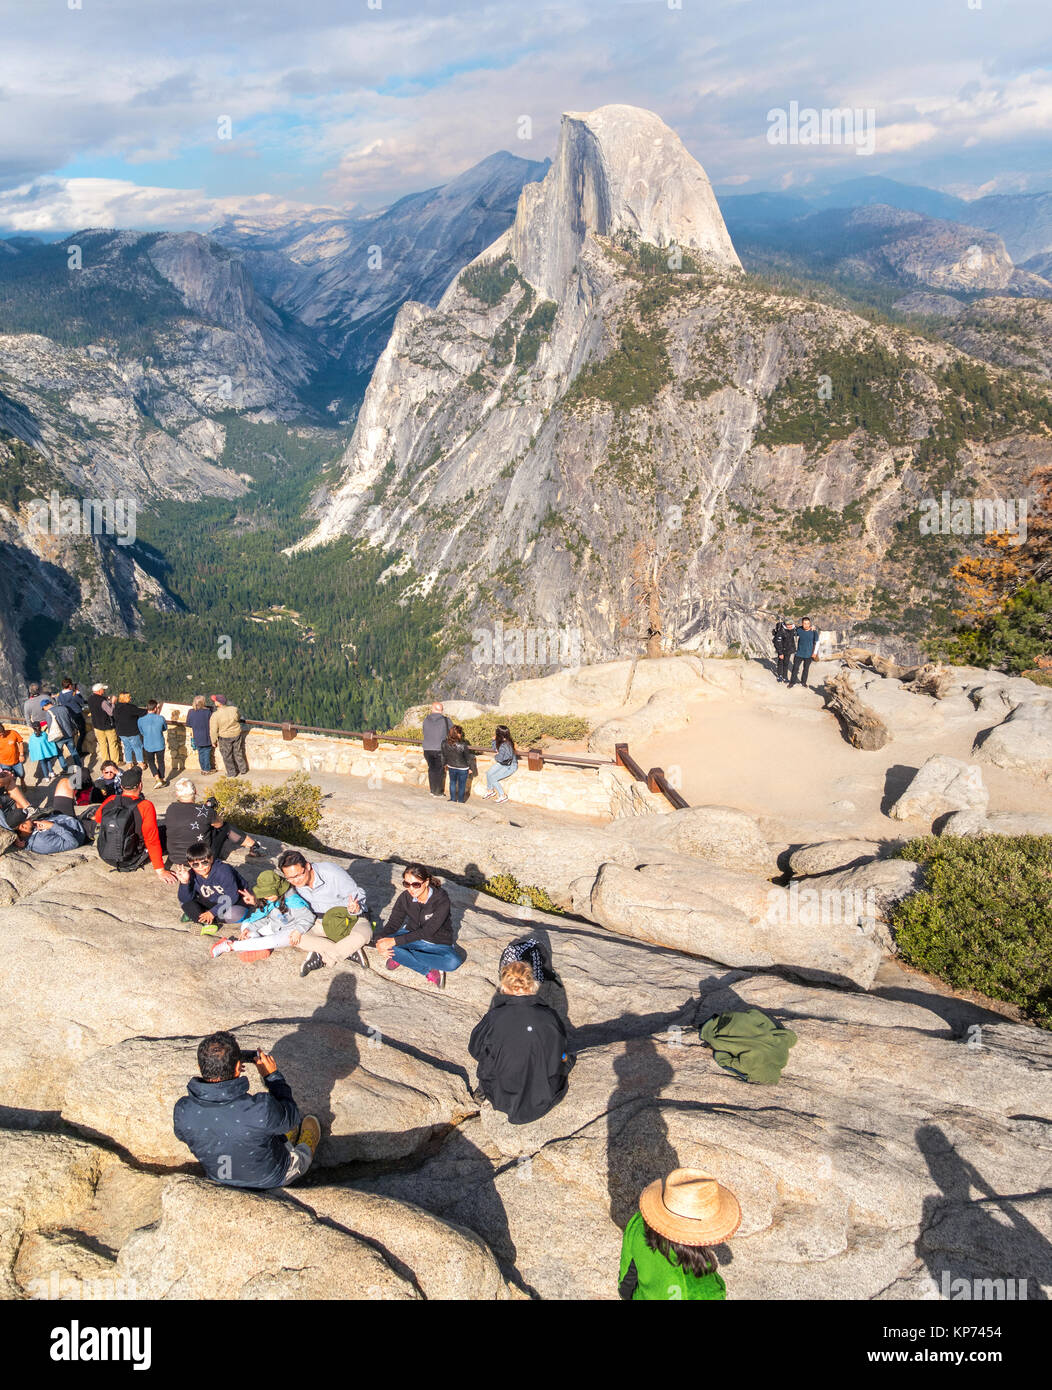 Half Dome Yosemite view from Glacier Point Overlook with people family taking pictures. Yosemite National Park California - Stock Image